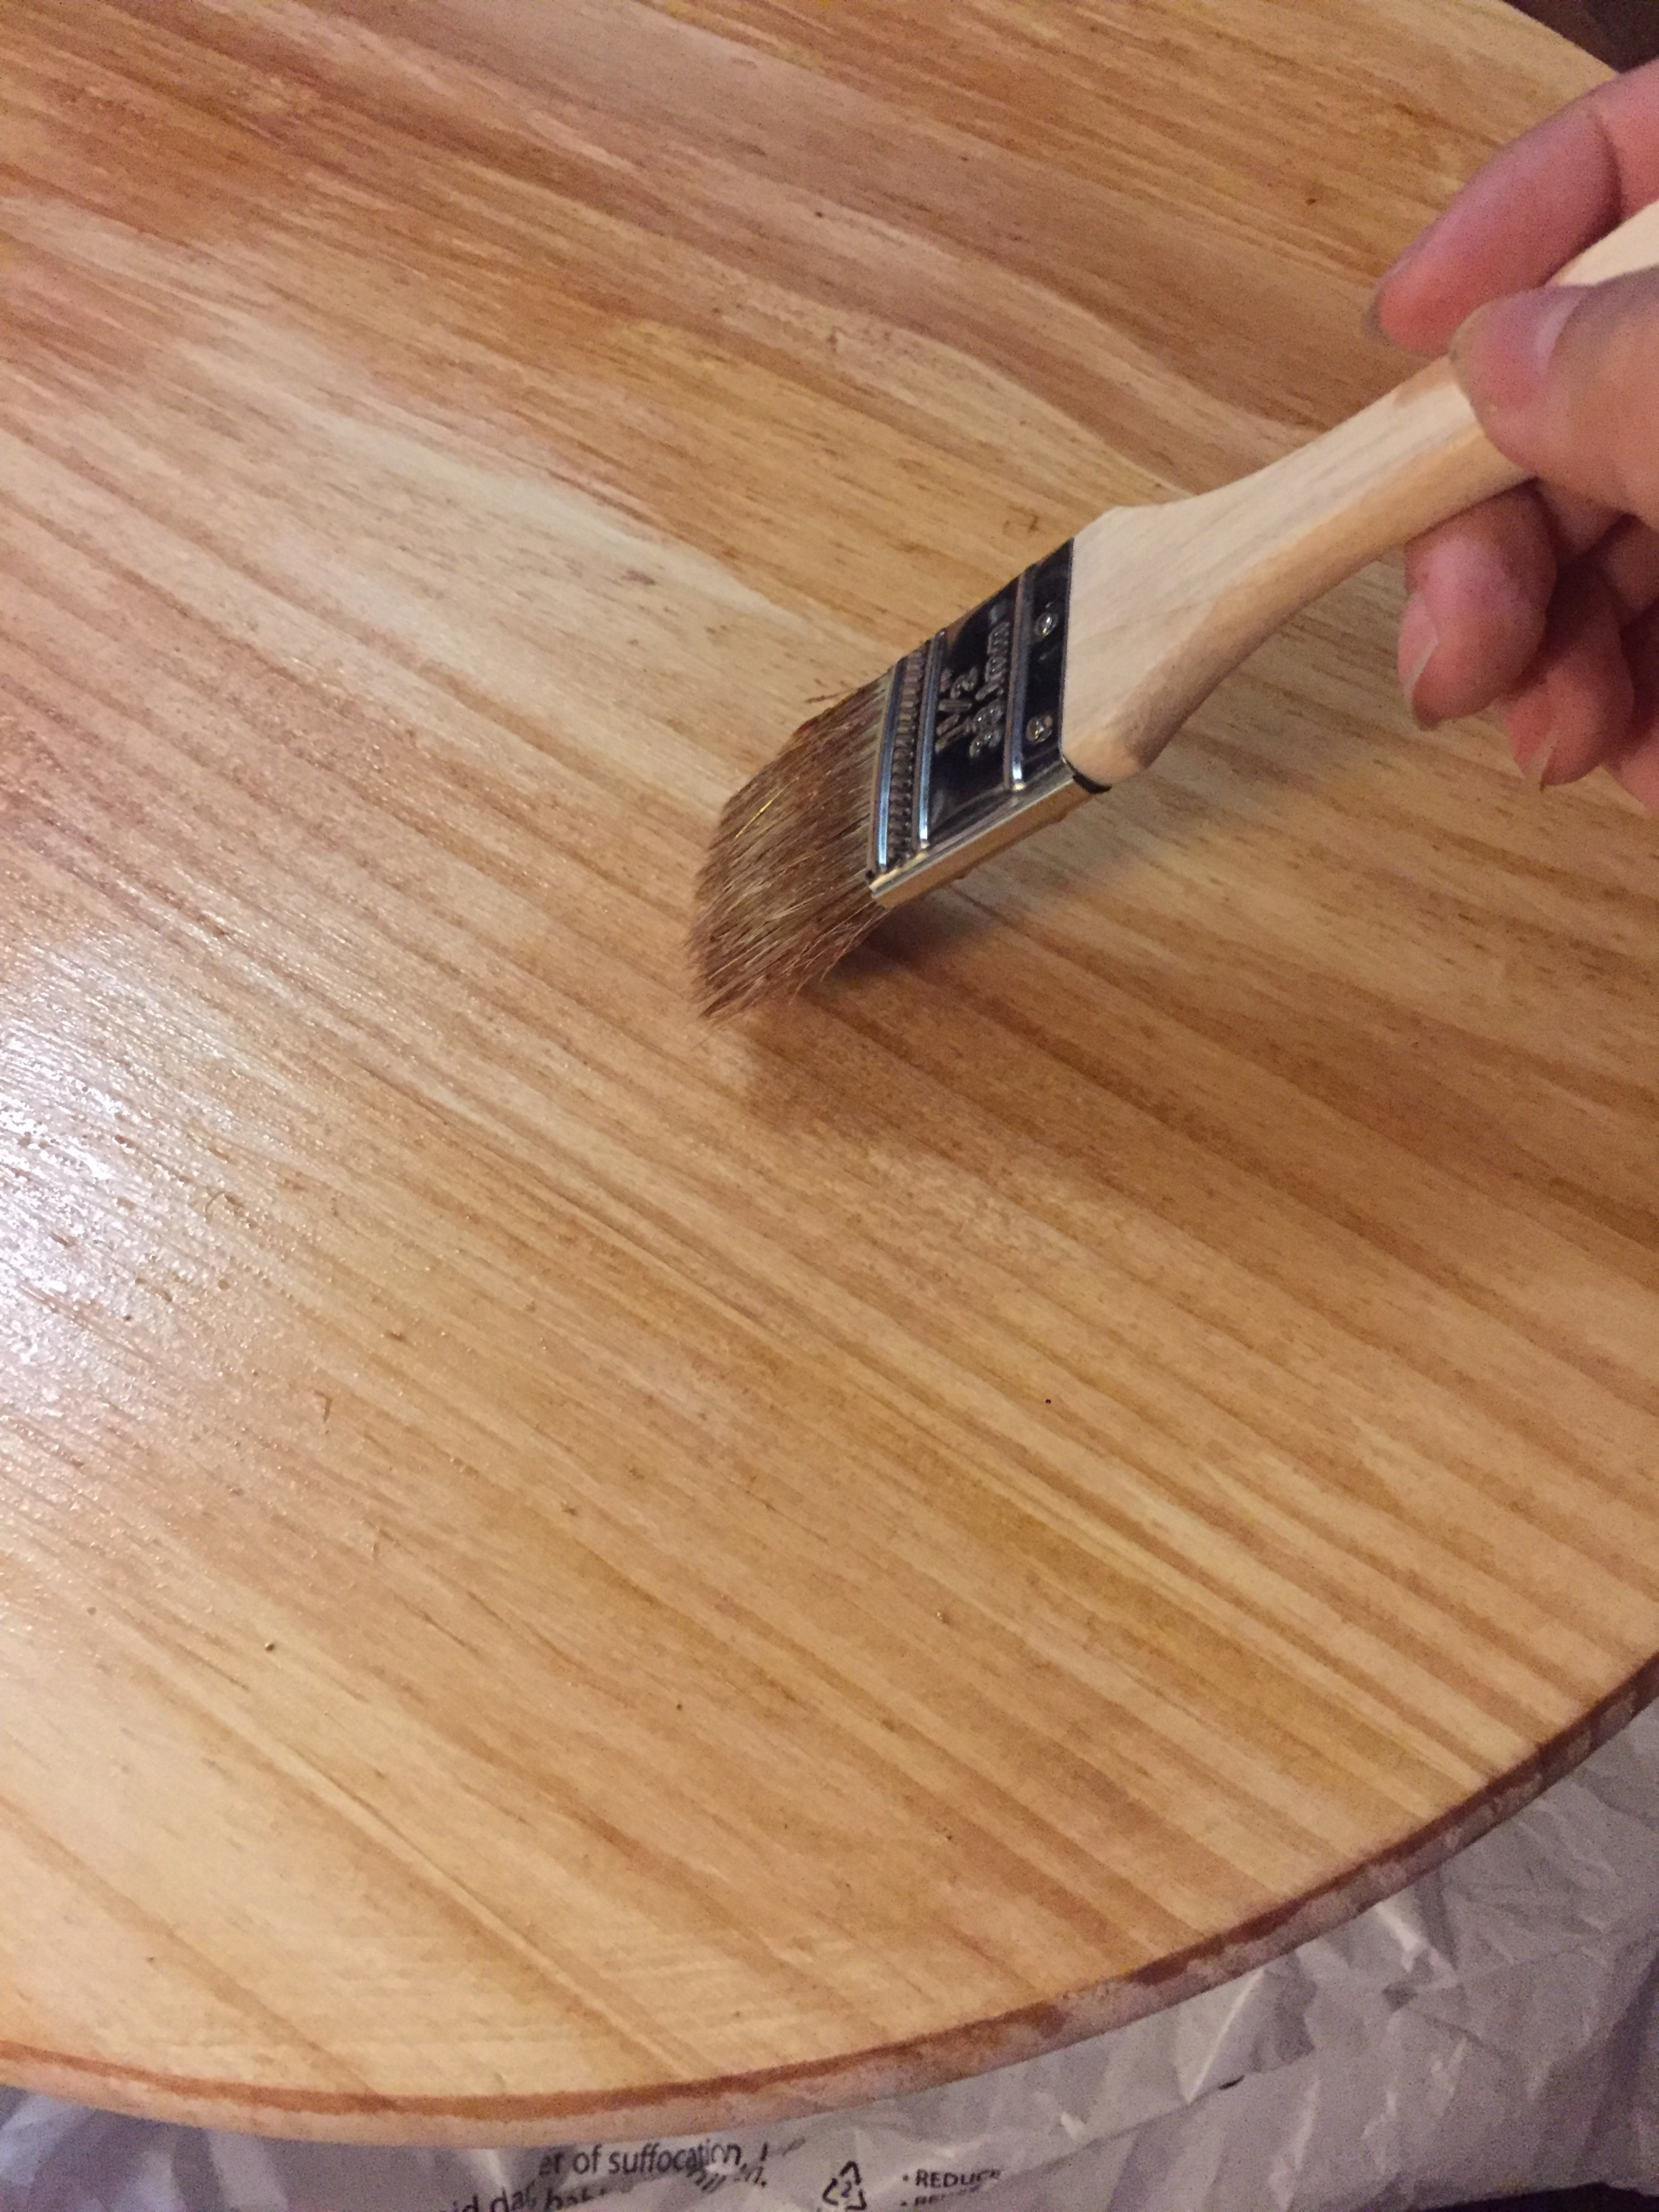 Shellac helps to seal the wood.